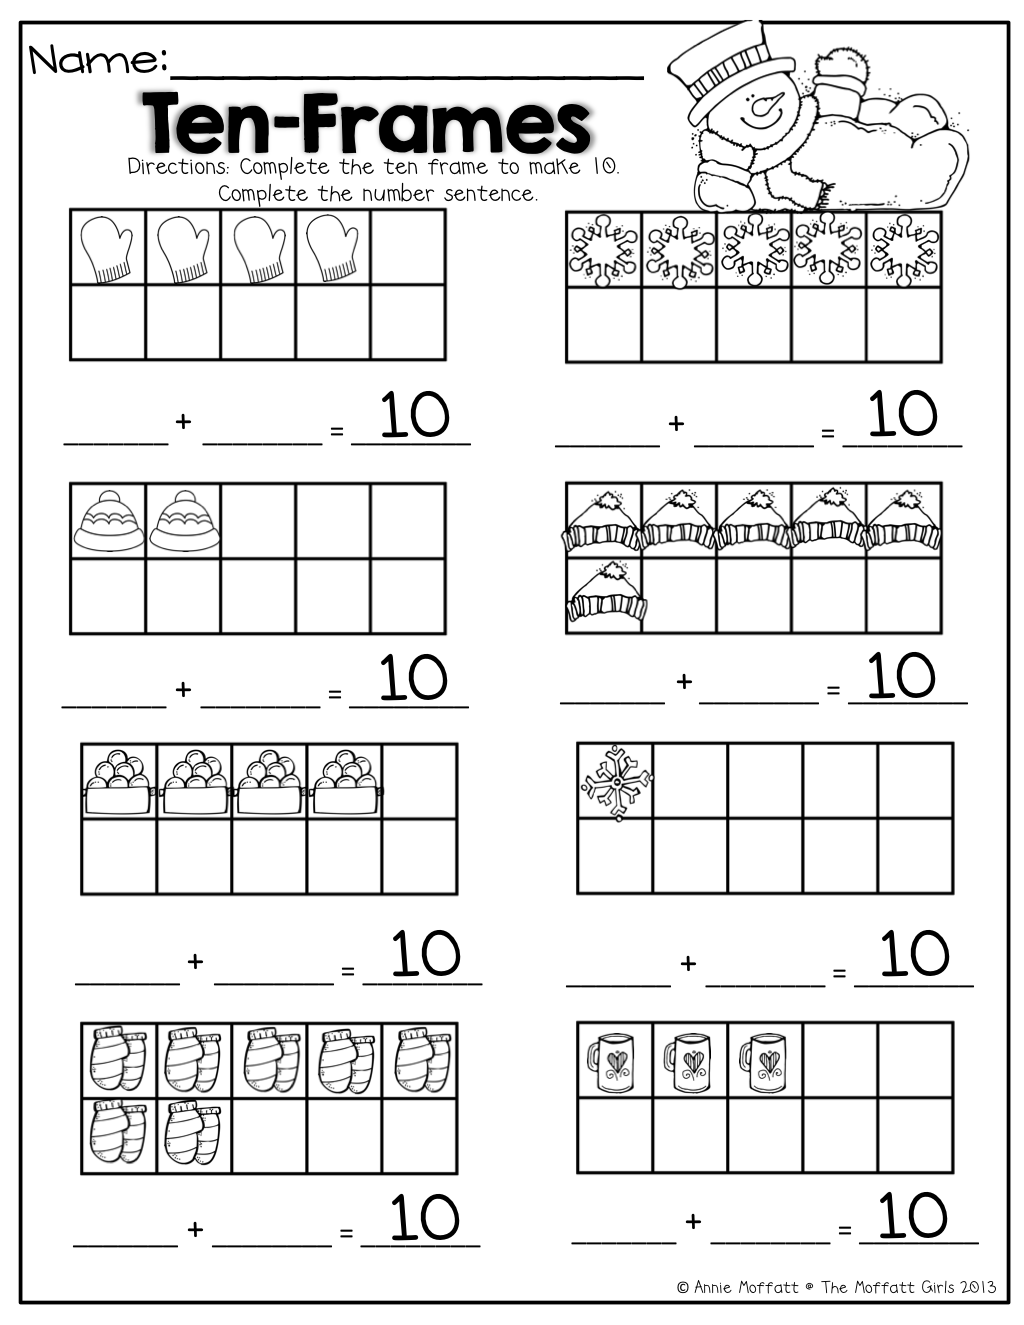 Ten Frame Math Different Ways To Make 10